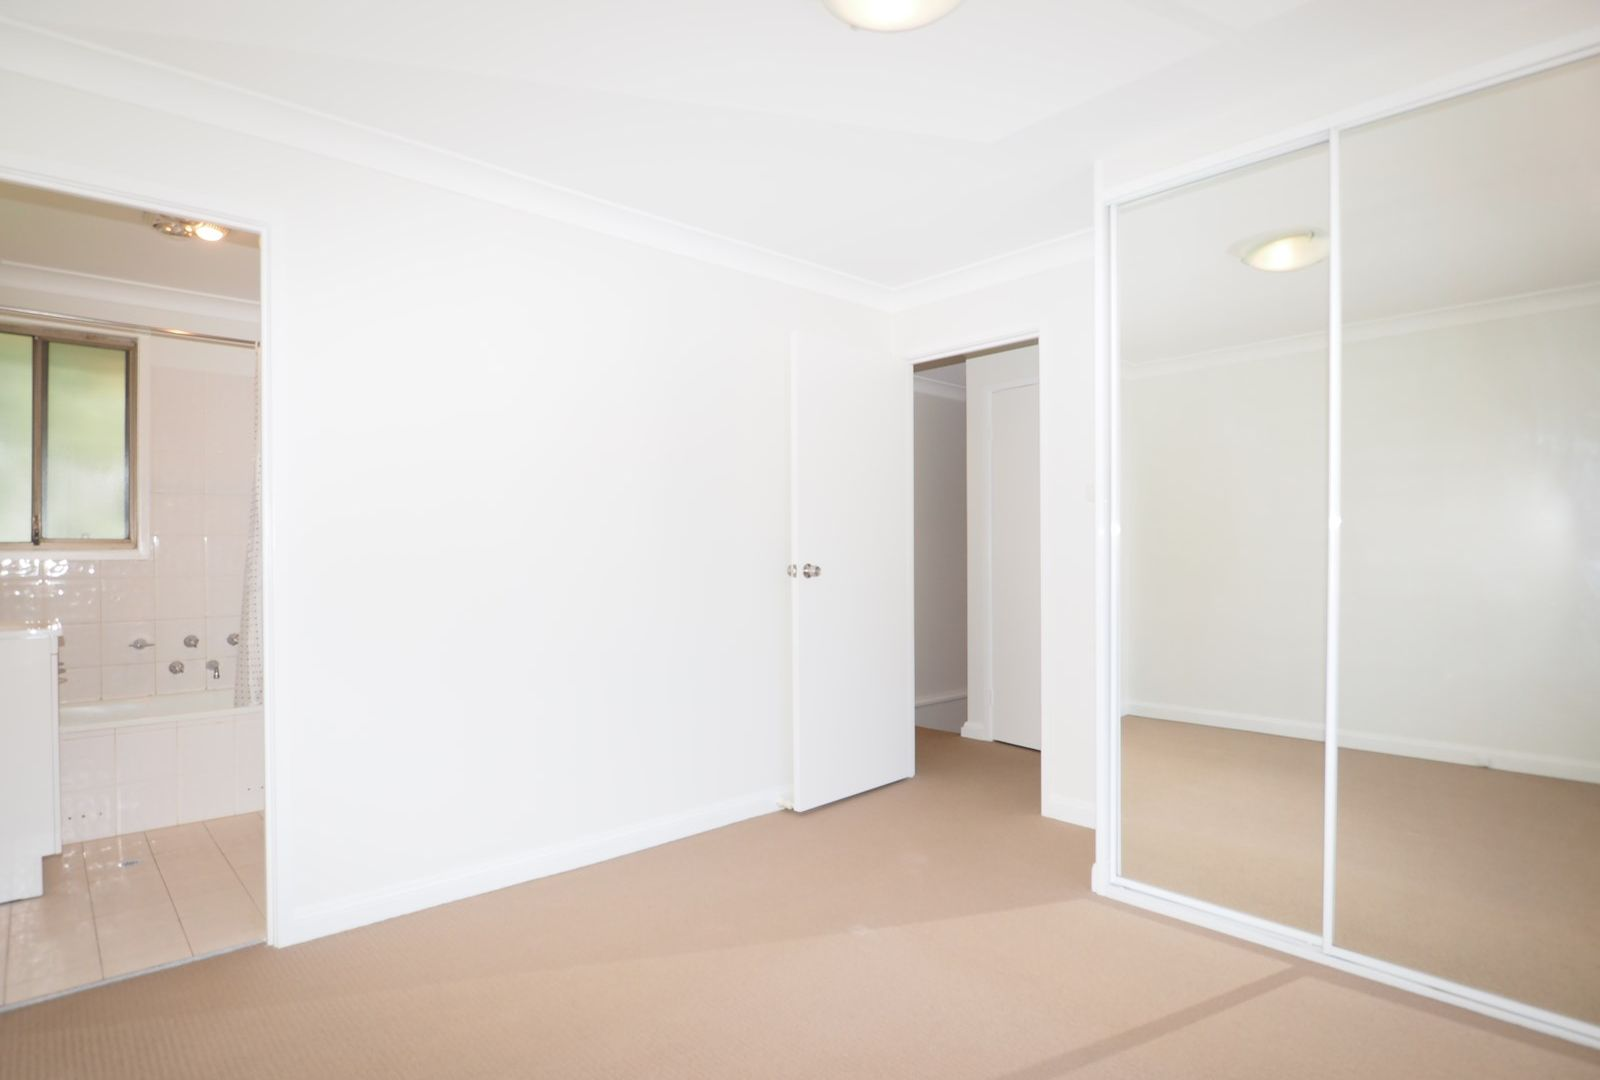 2/47 Barry Street, Neutral Bay NSW 2089, Image 7